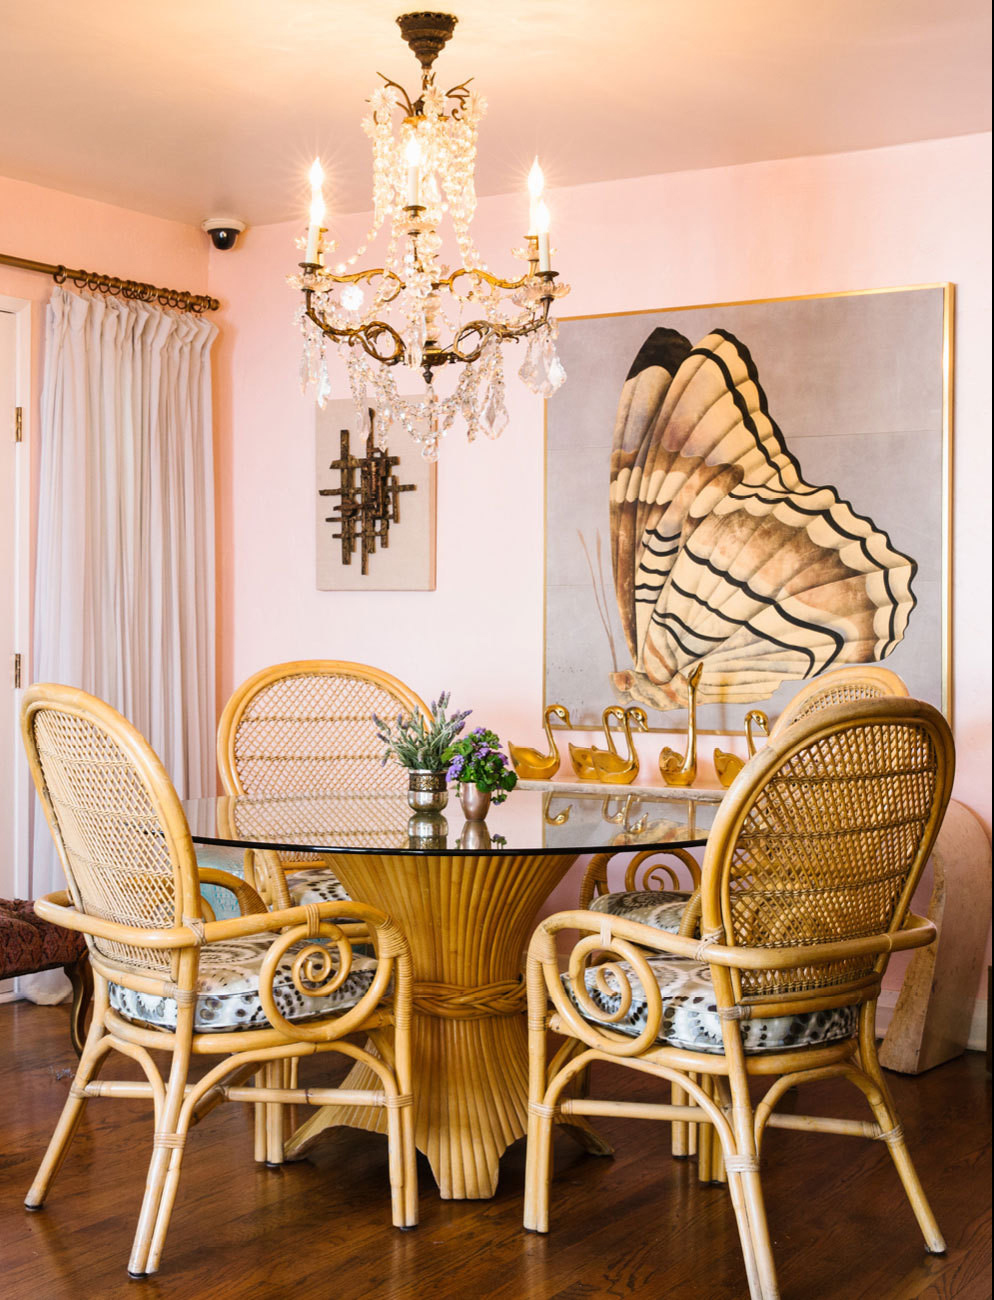 Butterfly Artwork Kitchen Wicker Table Set Chair Los Angeles 50s Style Home Interior Pink Walls Kitchenc